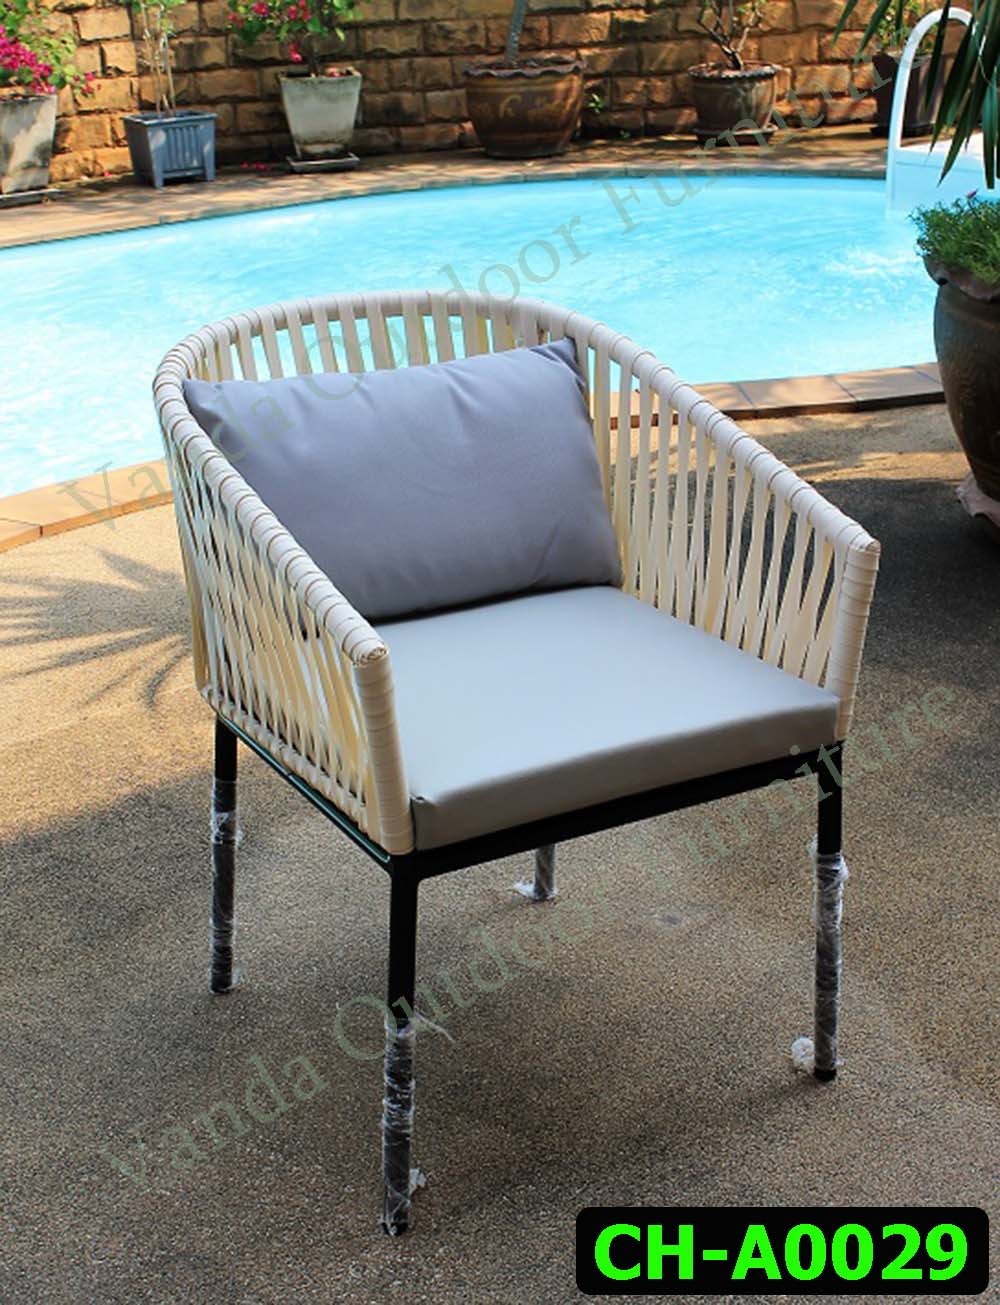 Rattan Chair Product code CH-A0029